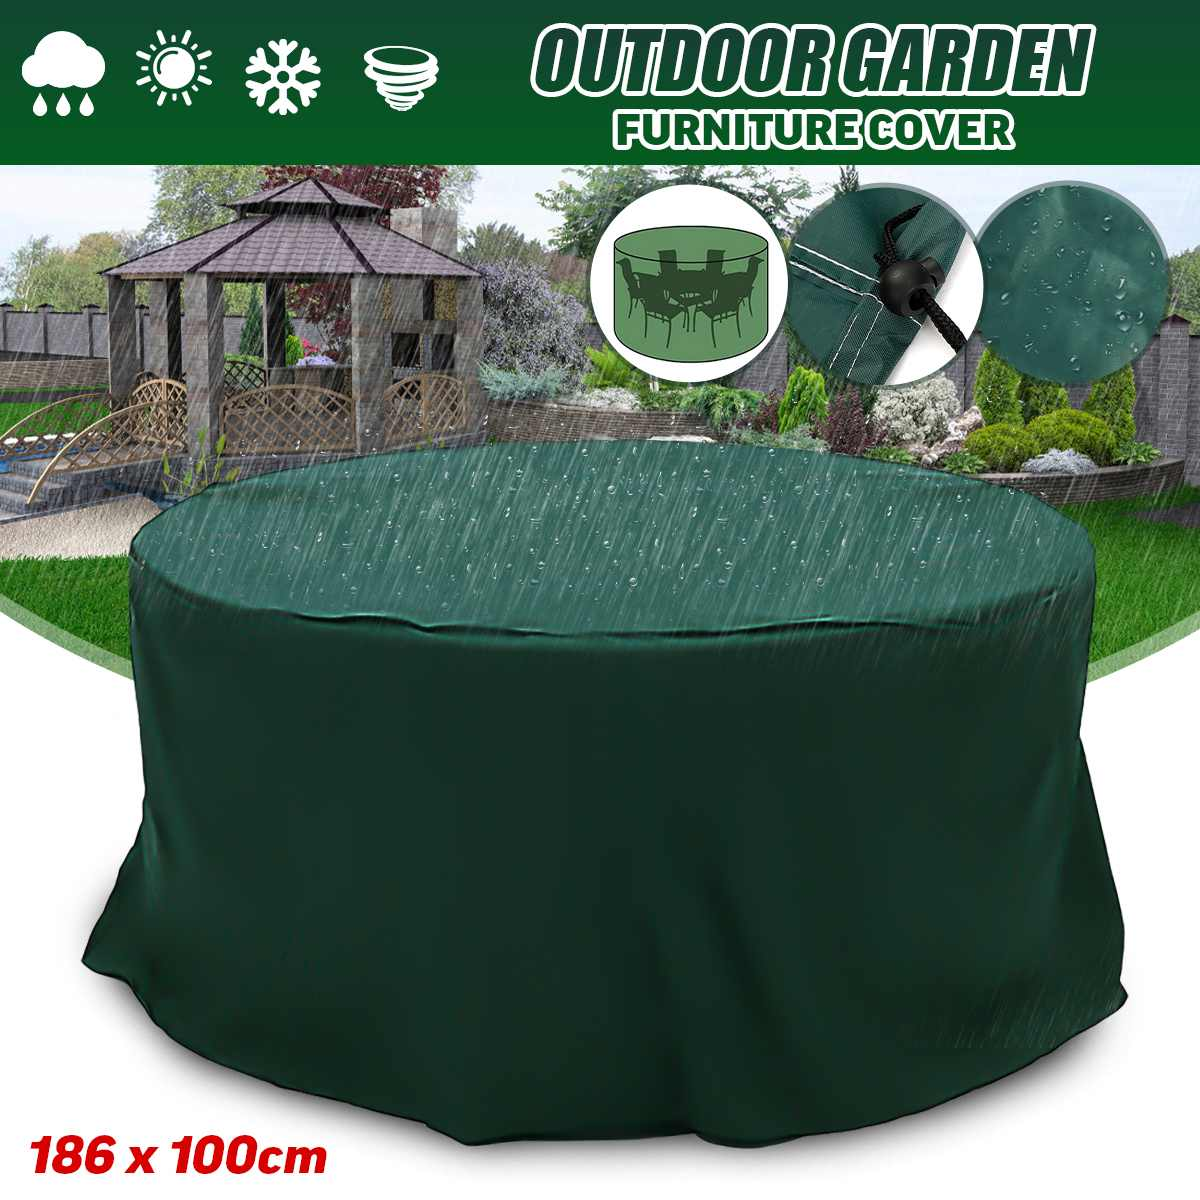 186x100cm Round Furniture Cover Waterproof Dustpoof For Patio Table Chair Covers For Furniture Out Door Garden